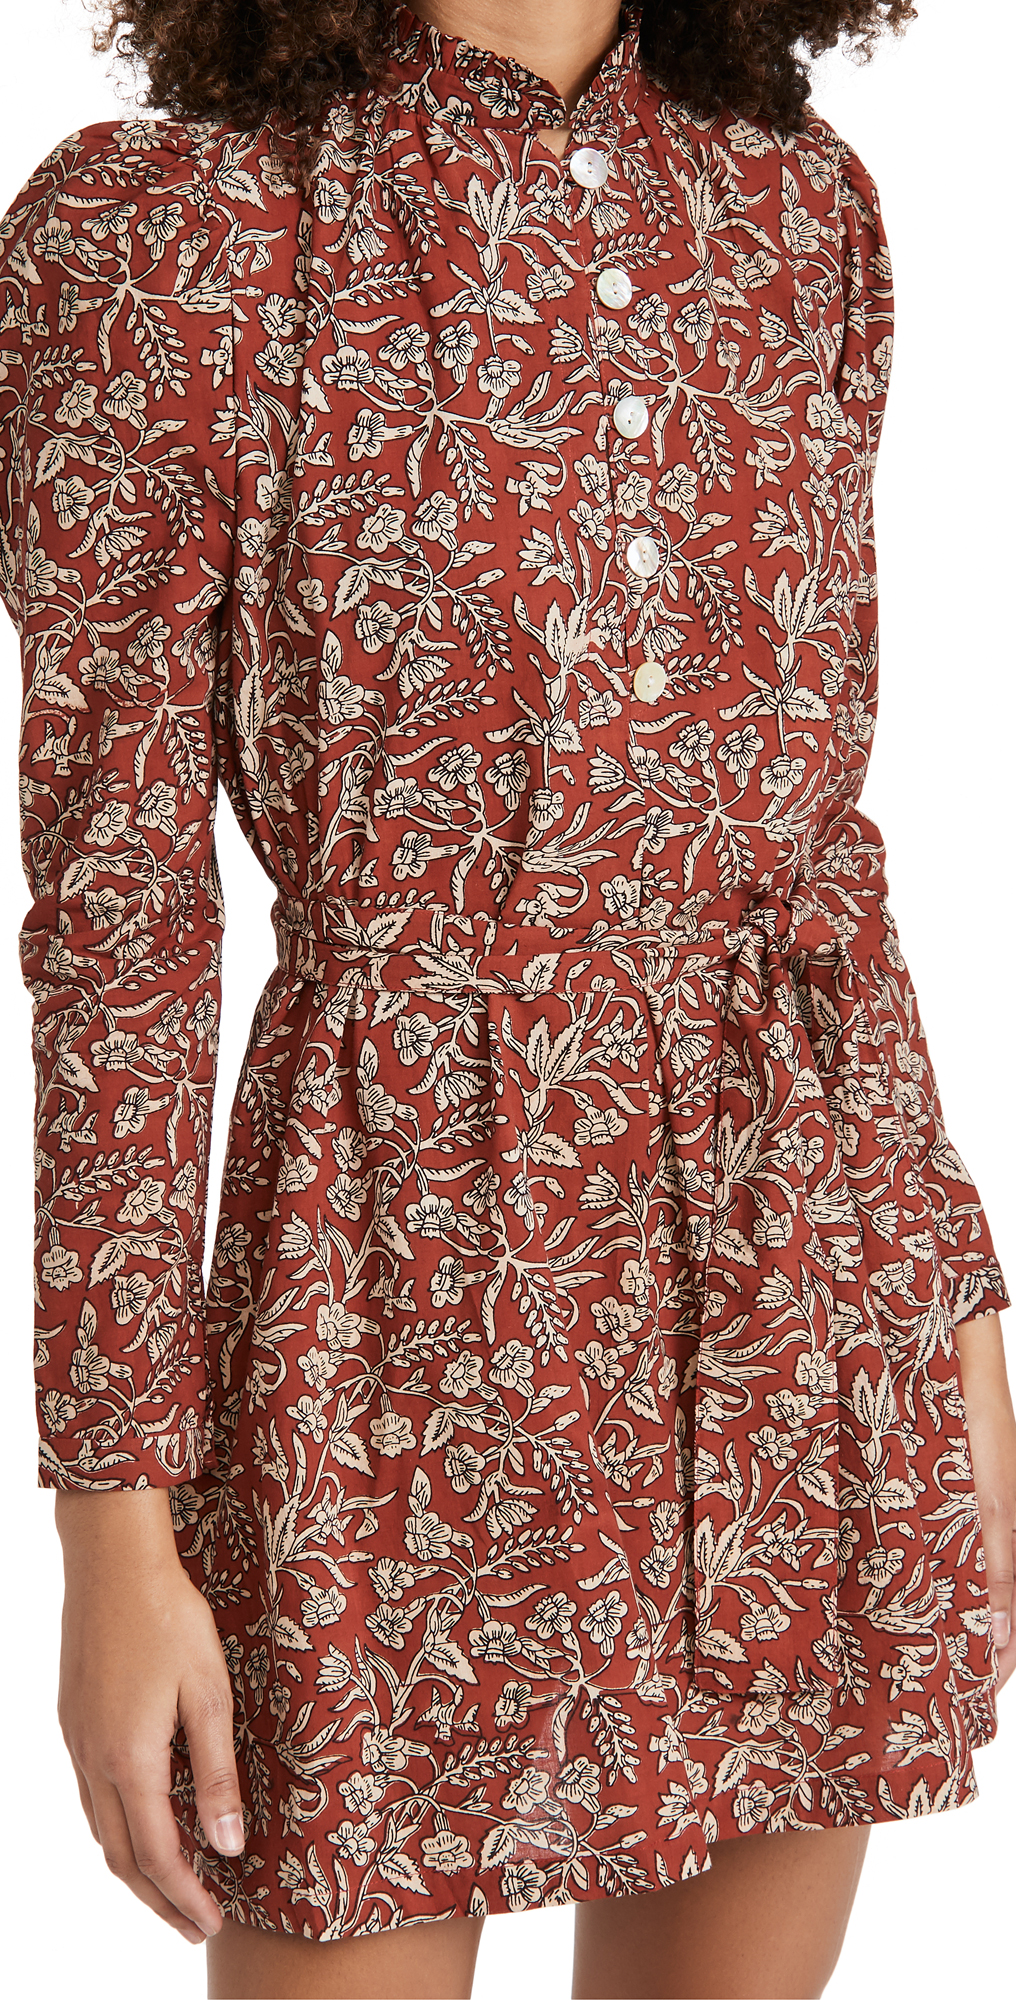 Alix of Bohemia Mini Laura Red Currant Block Print Dress